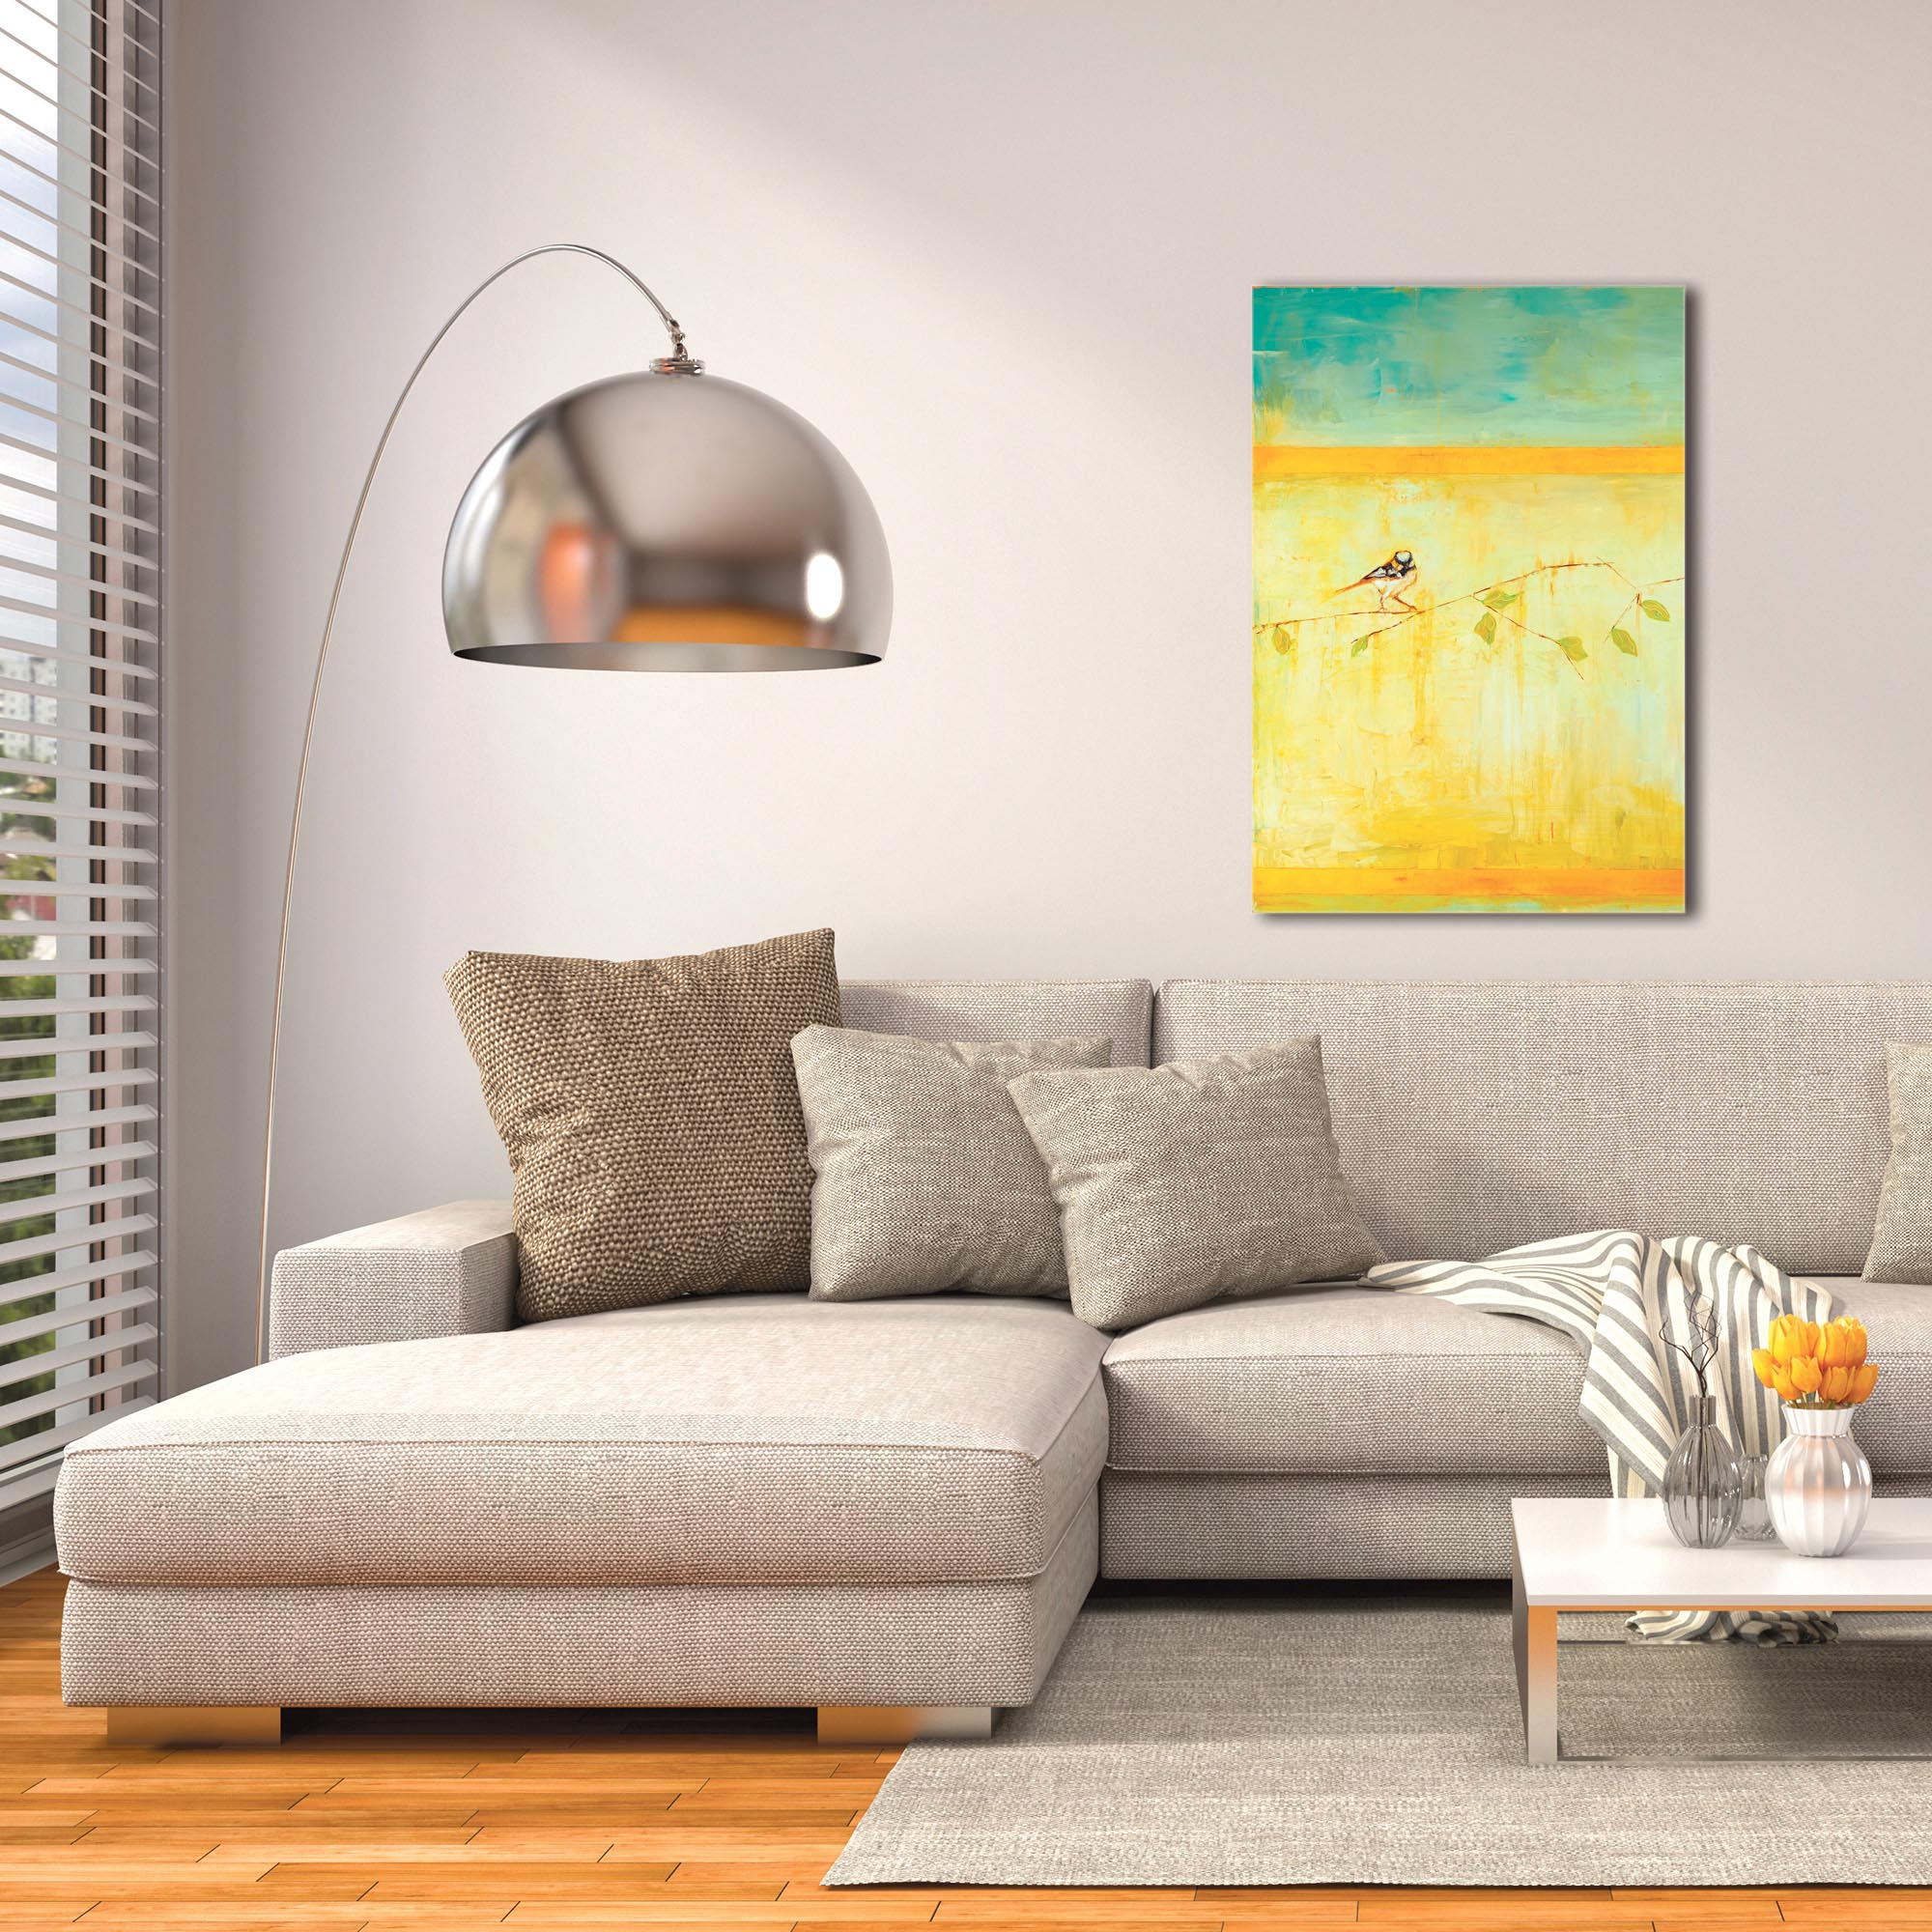 Contemporary Wall Art 'Bird with Horizontal Stripes v2' - Urban Birds Decor on Metal or Plexiglass - Image 3